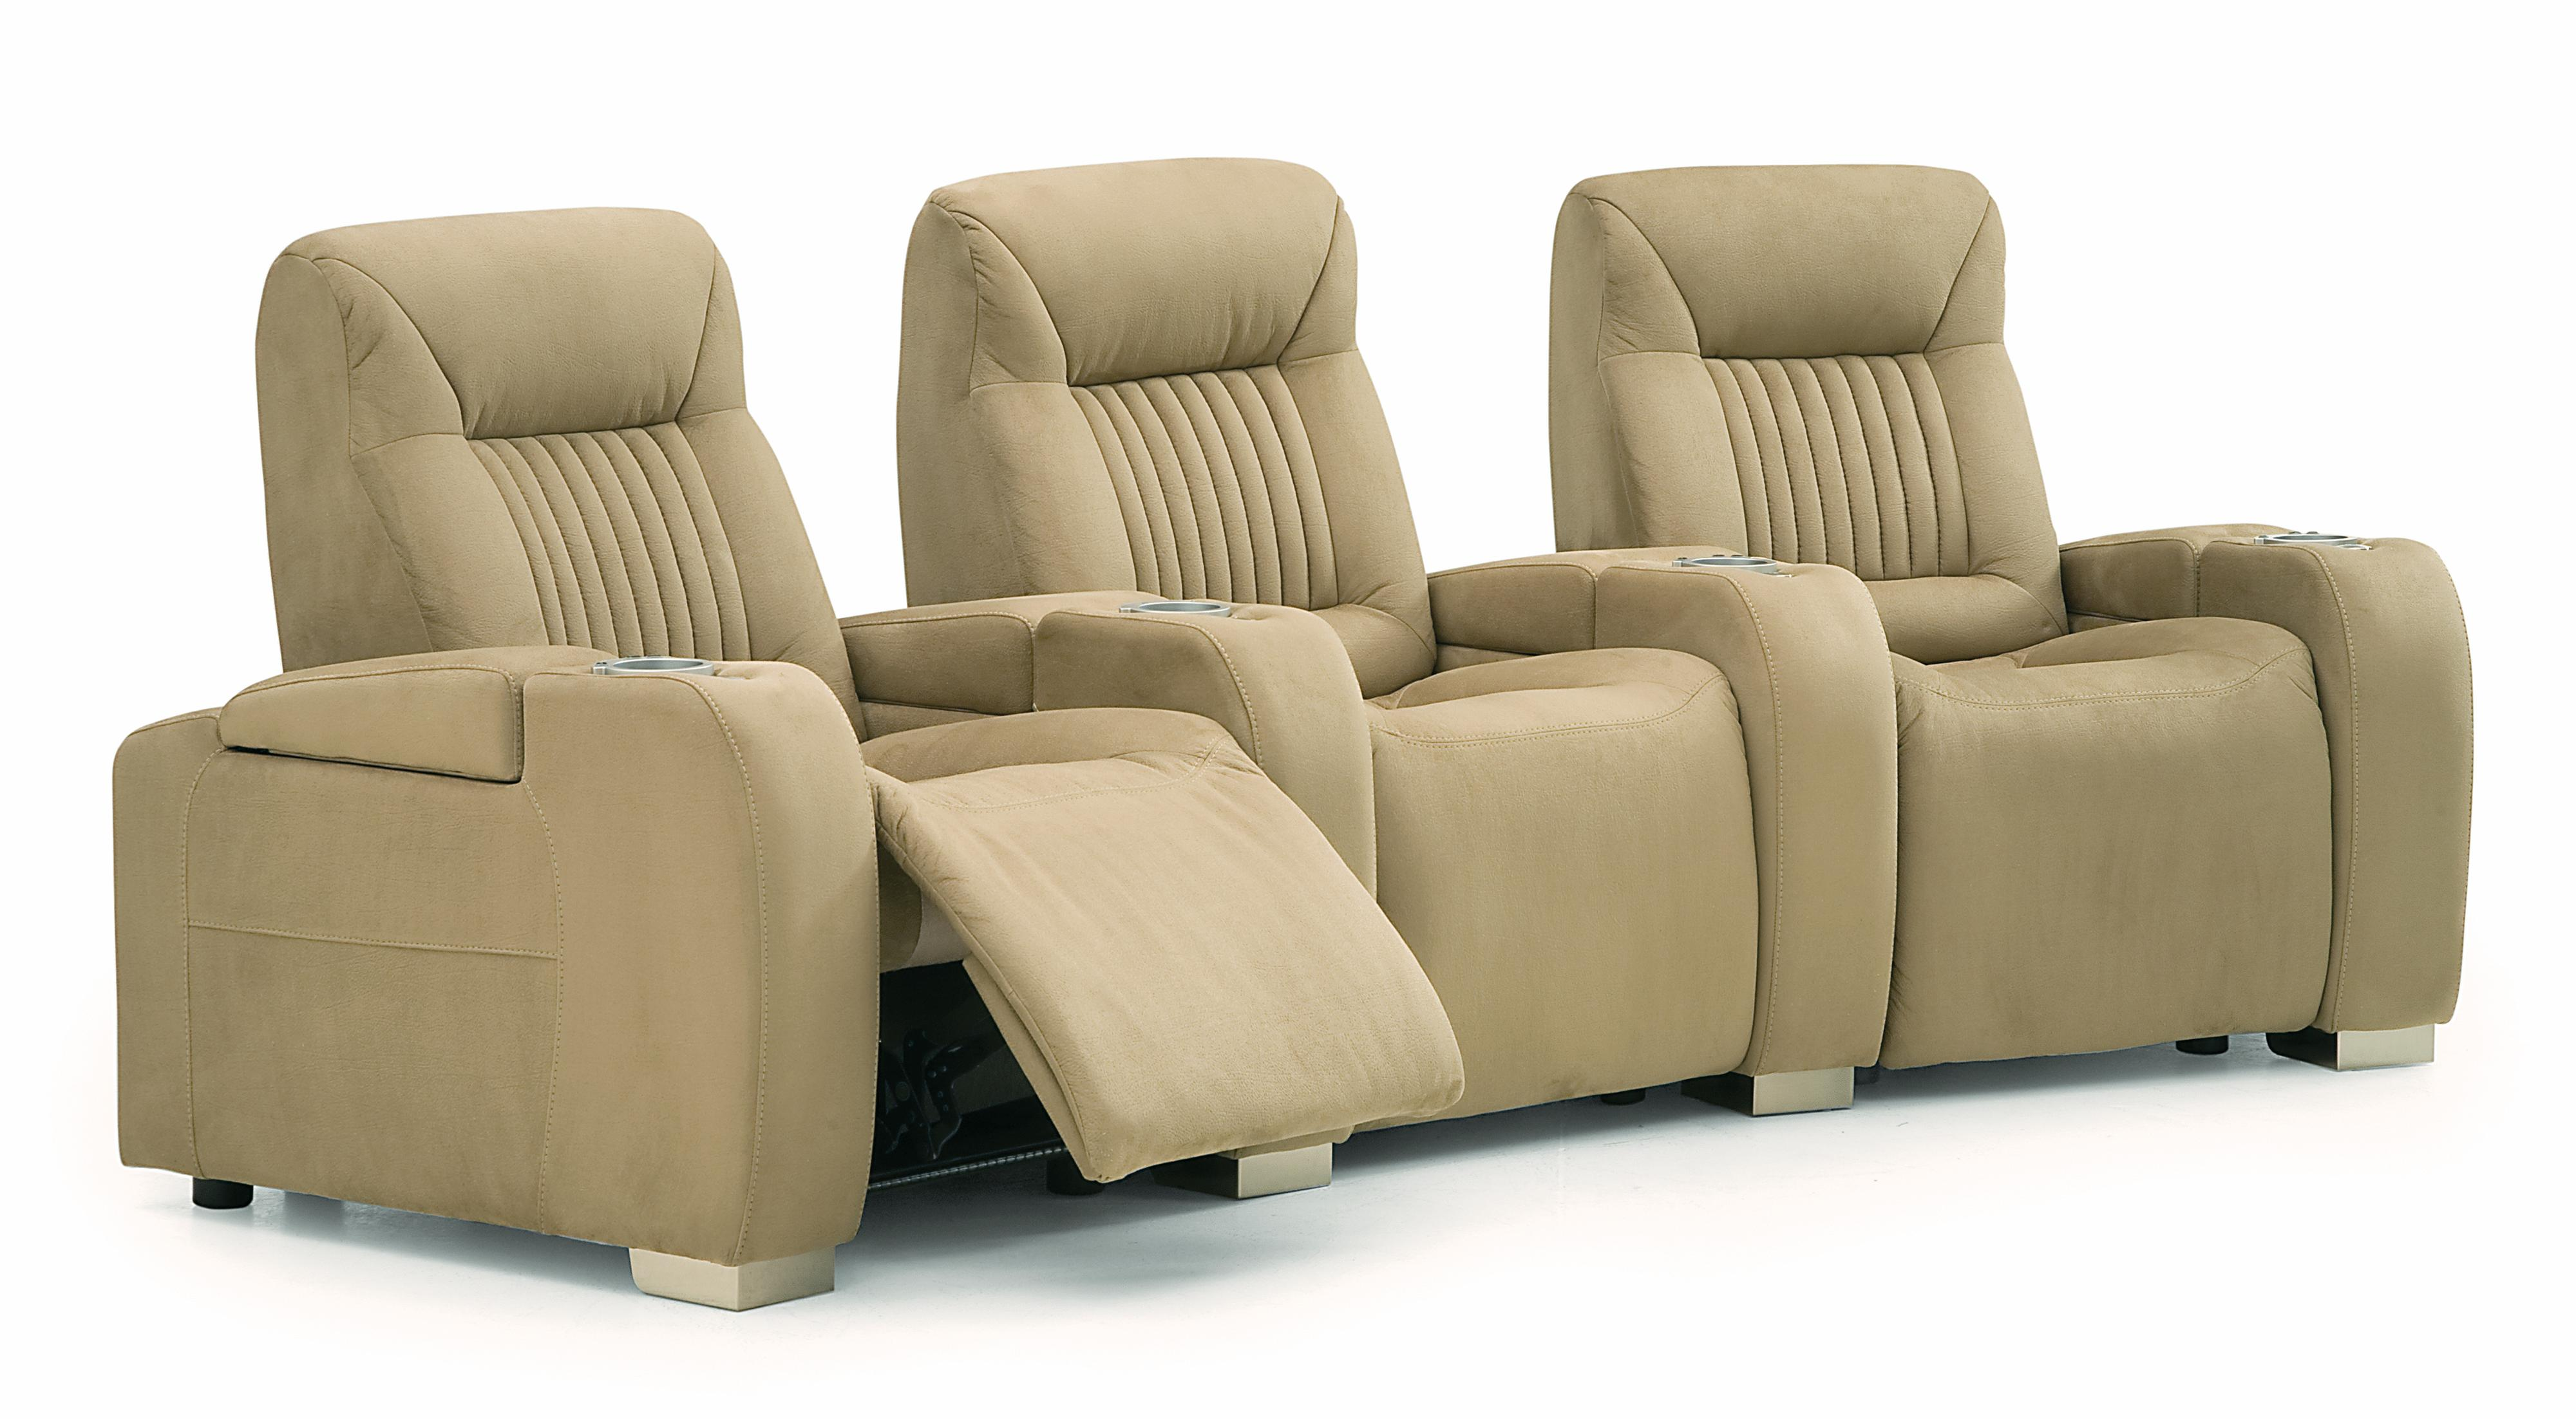 Palliser Autobahn Manual 3 pc. Theather Seating - Item Number: 46954-5R+8R+6R